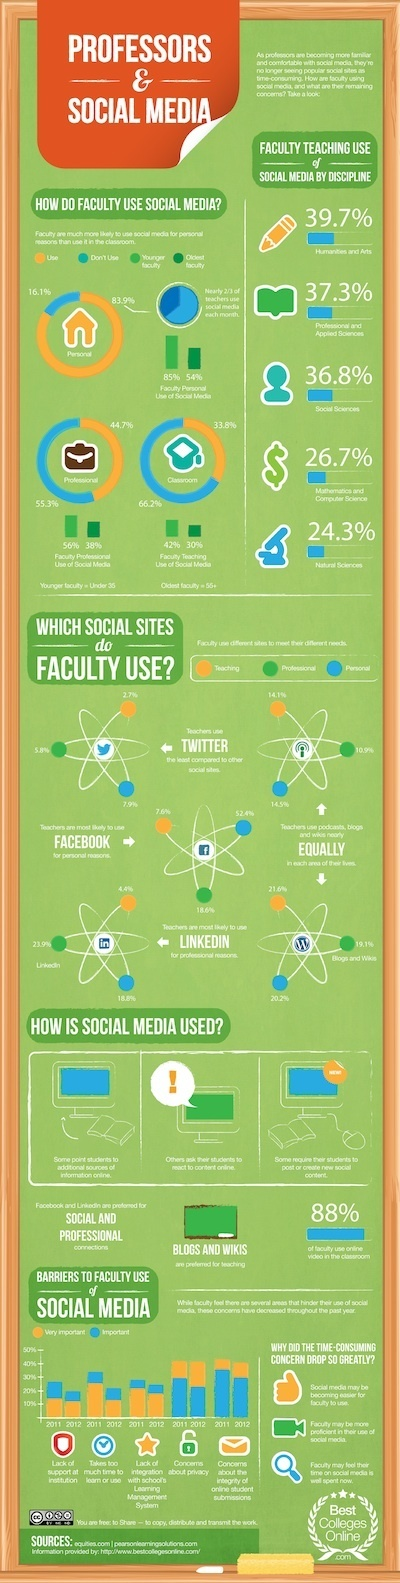 Professors & Social Media - Best Colleges Online | Studying Teaching and Learning | Scoop.it